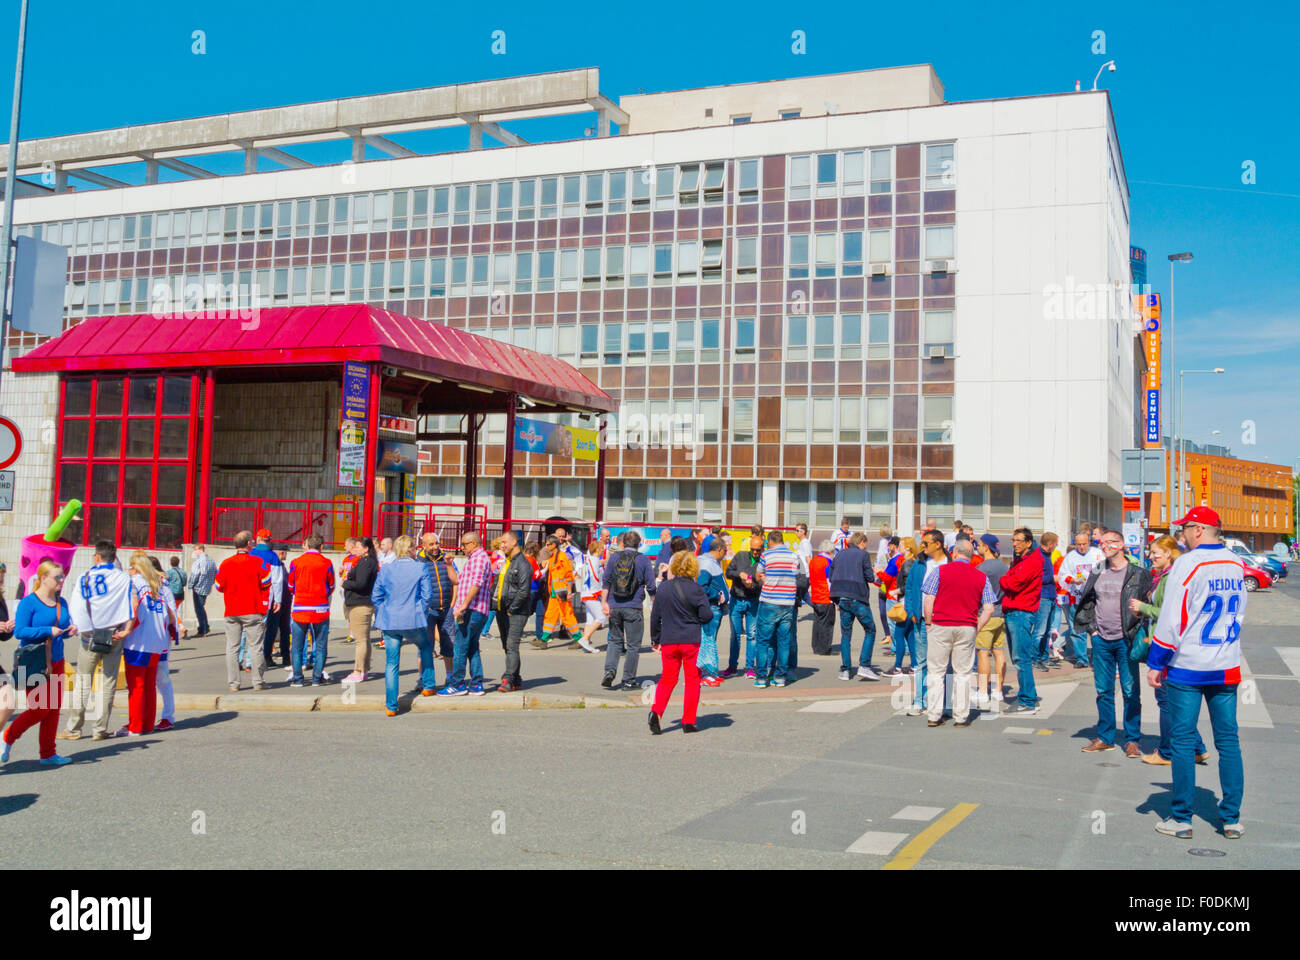 Fans outside metro station, during 2015 Ice Hockey World Championships, Ceskomoravska, Prague, Czech Republic, Europe - Stock Image